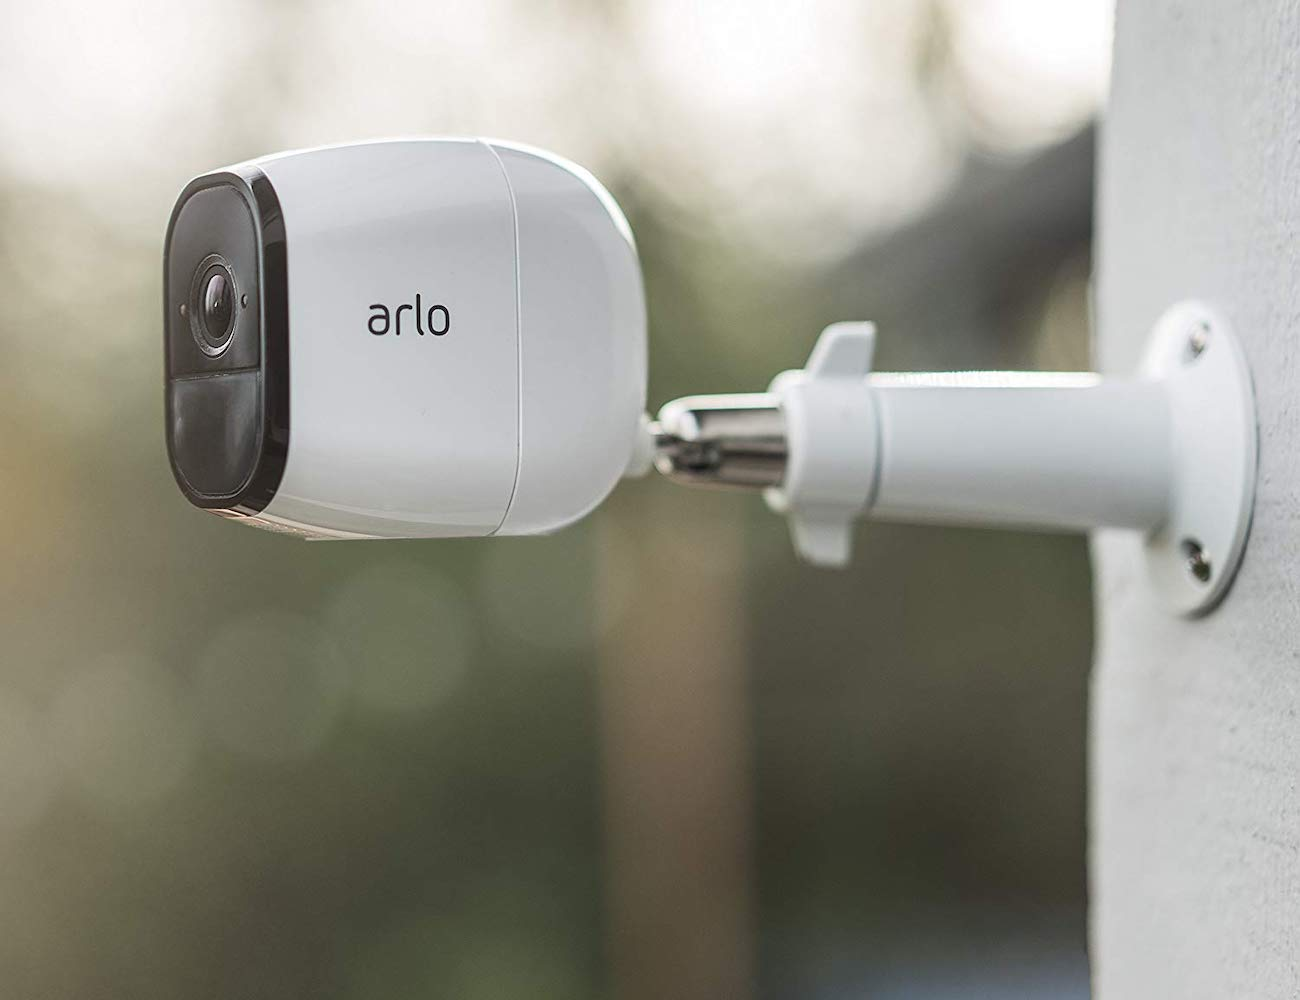 Arlo Pro Rechargeable Wireless Security Camera helps protect your home